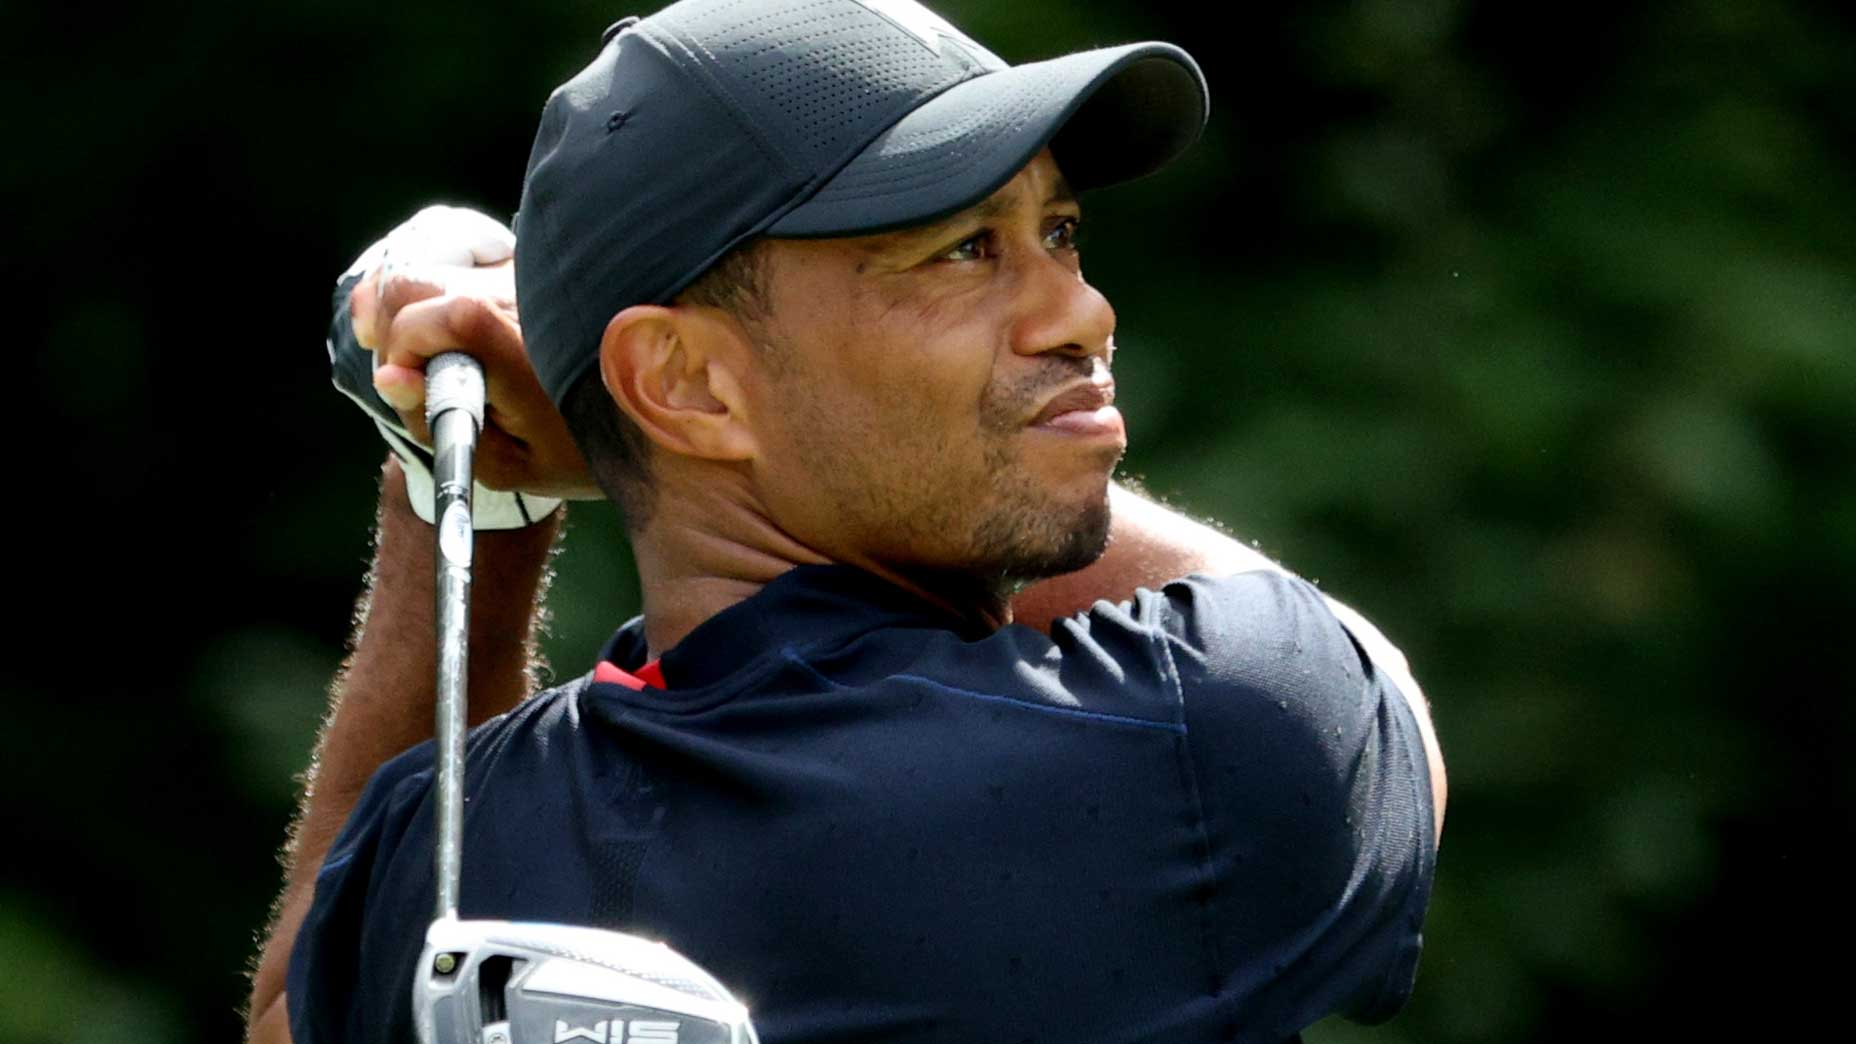 2020 Bmw Championship Round 1 Tee Times Groupings For Thursday Todayheadline